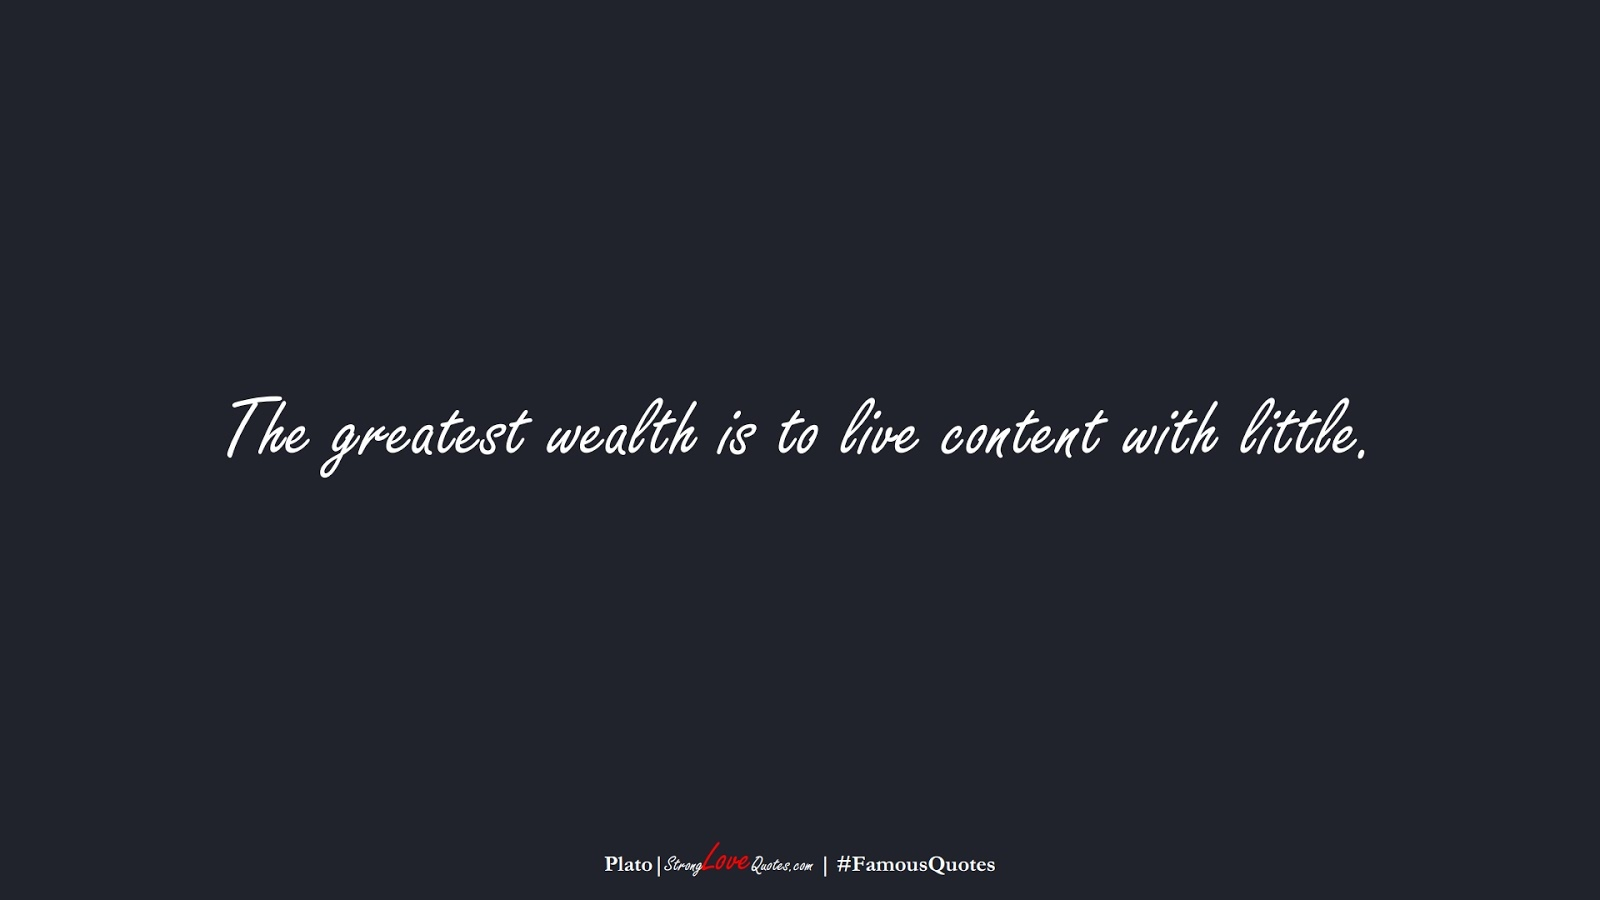 The greatest wealth is to live content with little. (Plato);  #FamousQuotes